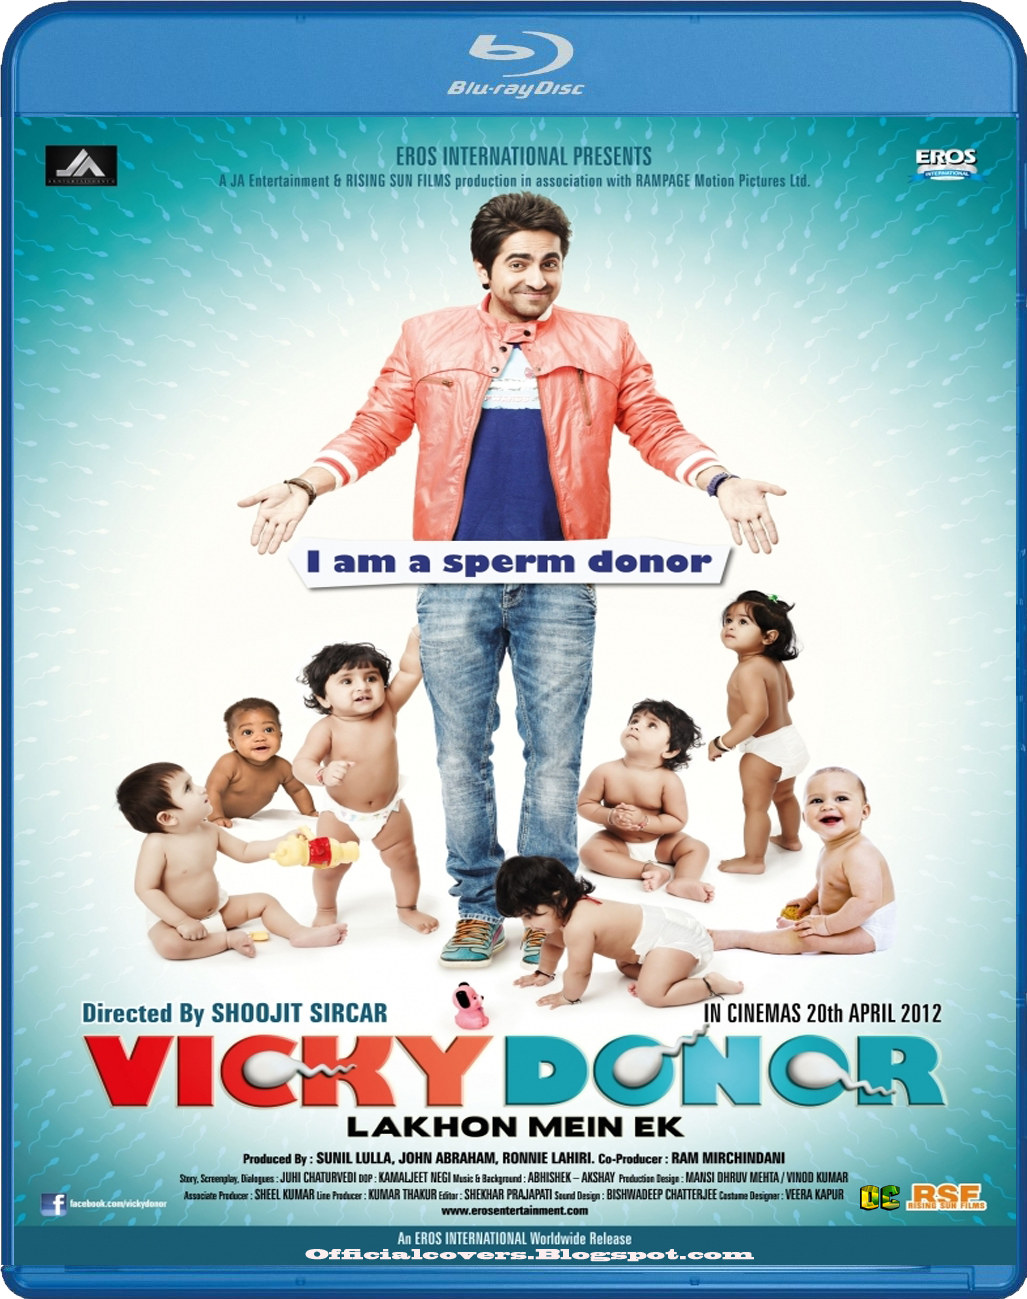 testing: Vicky Donor (2012) Bollywood Movie Bluray HD Cover